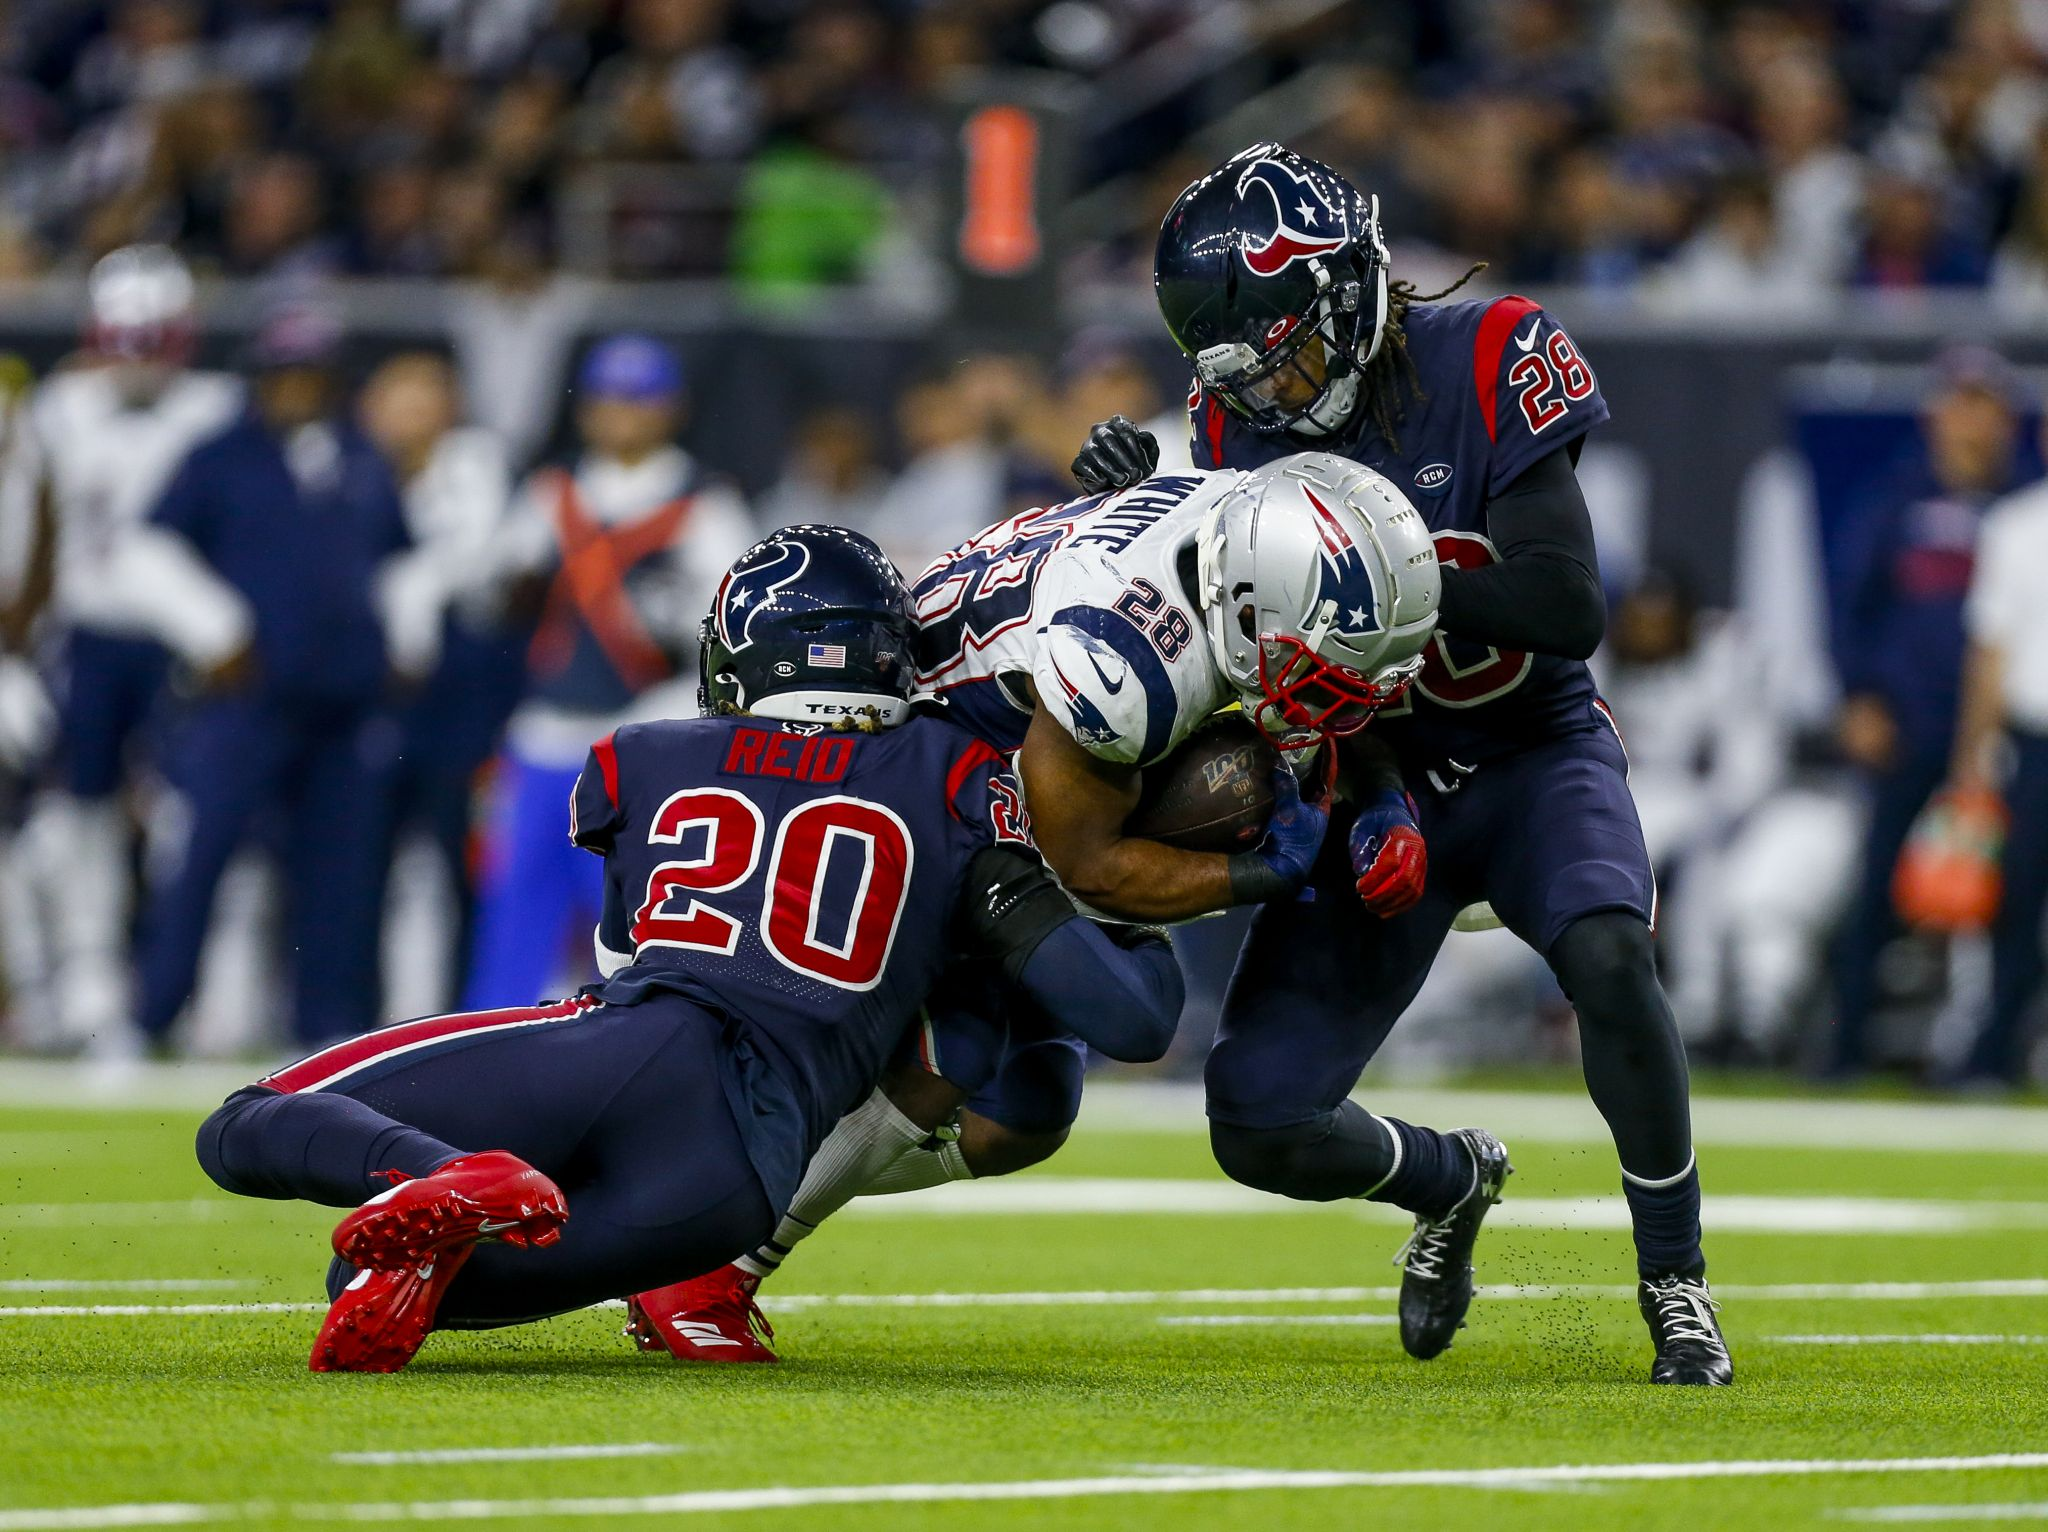 McClain's Mailbag: Win over Patriots still brings complaints